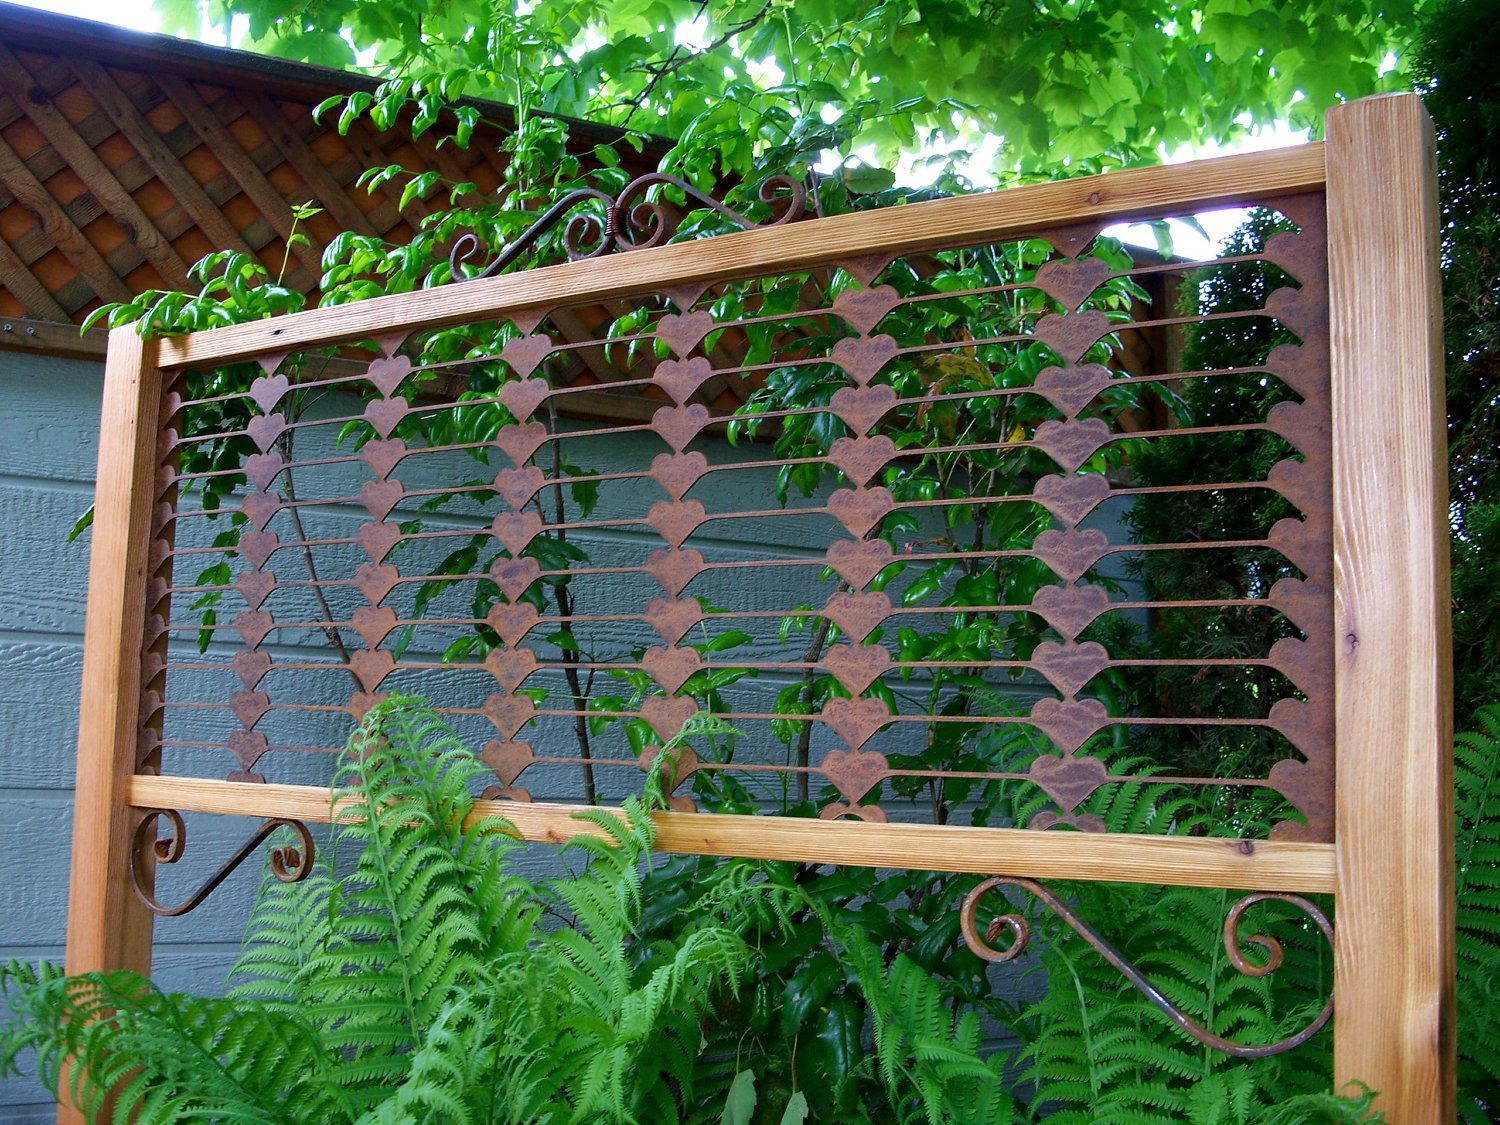 Delightful Garden Decor Garden Screen Trellis Garden Art By MiscKDesigns